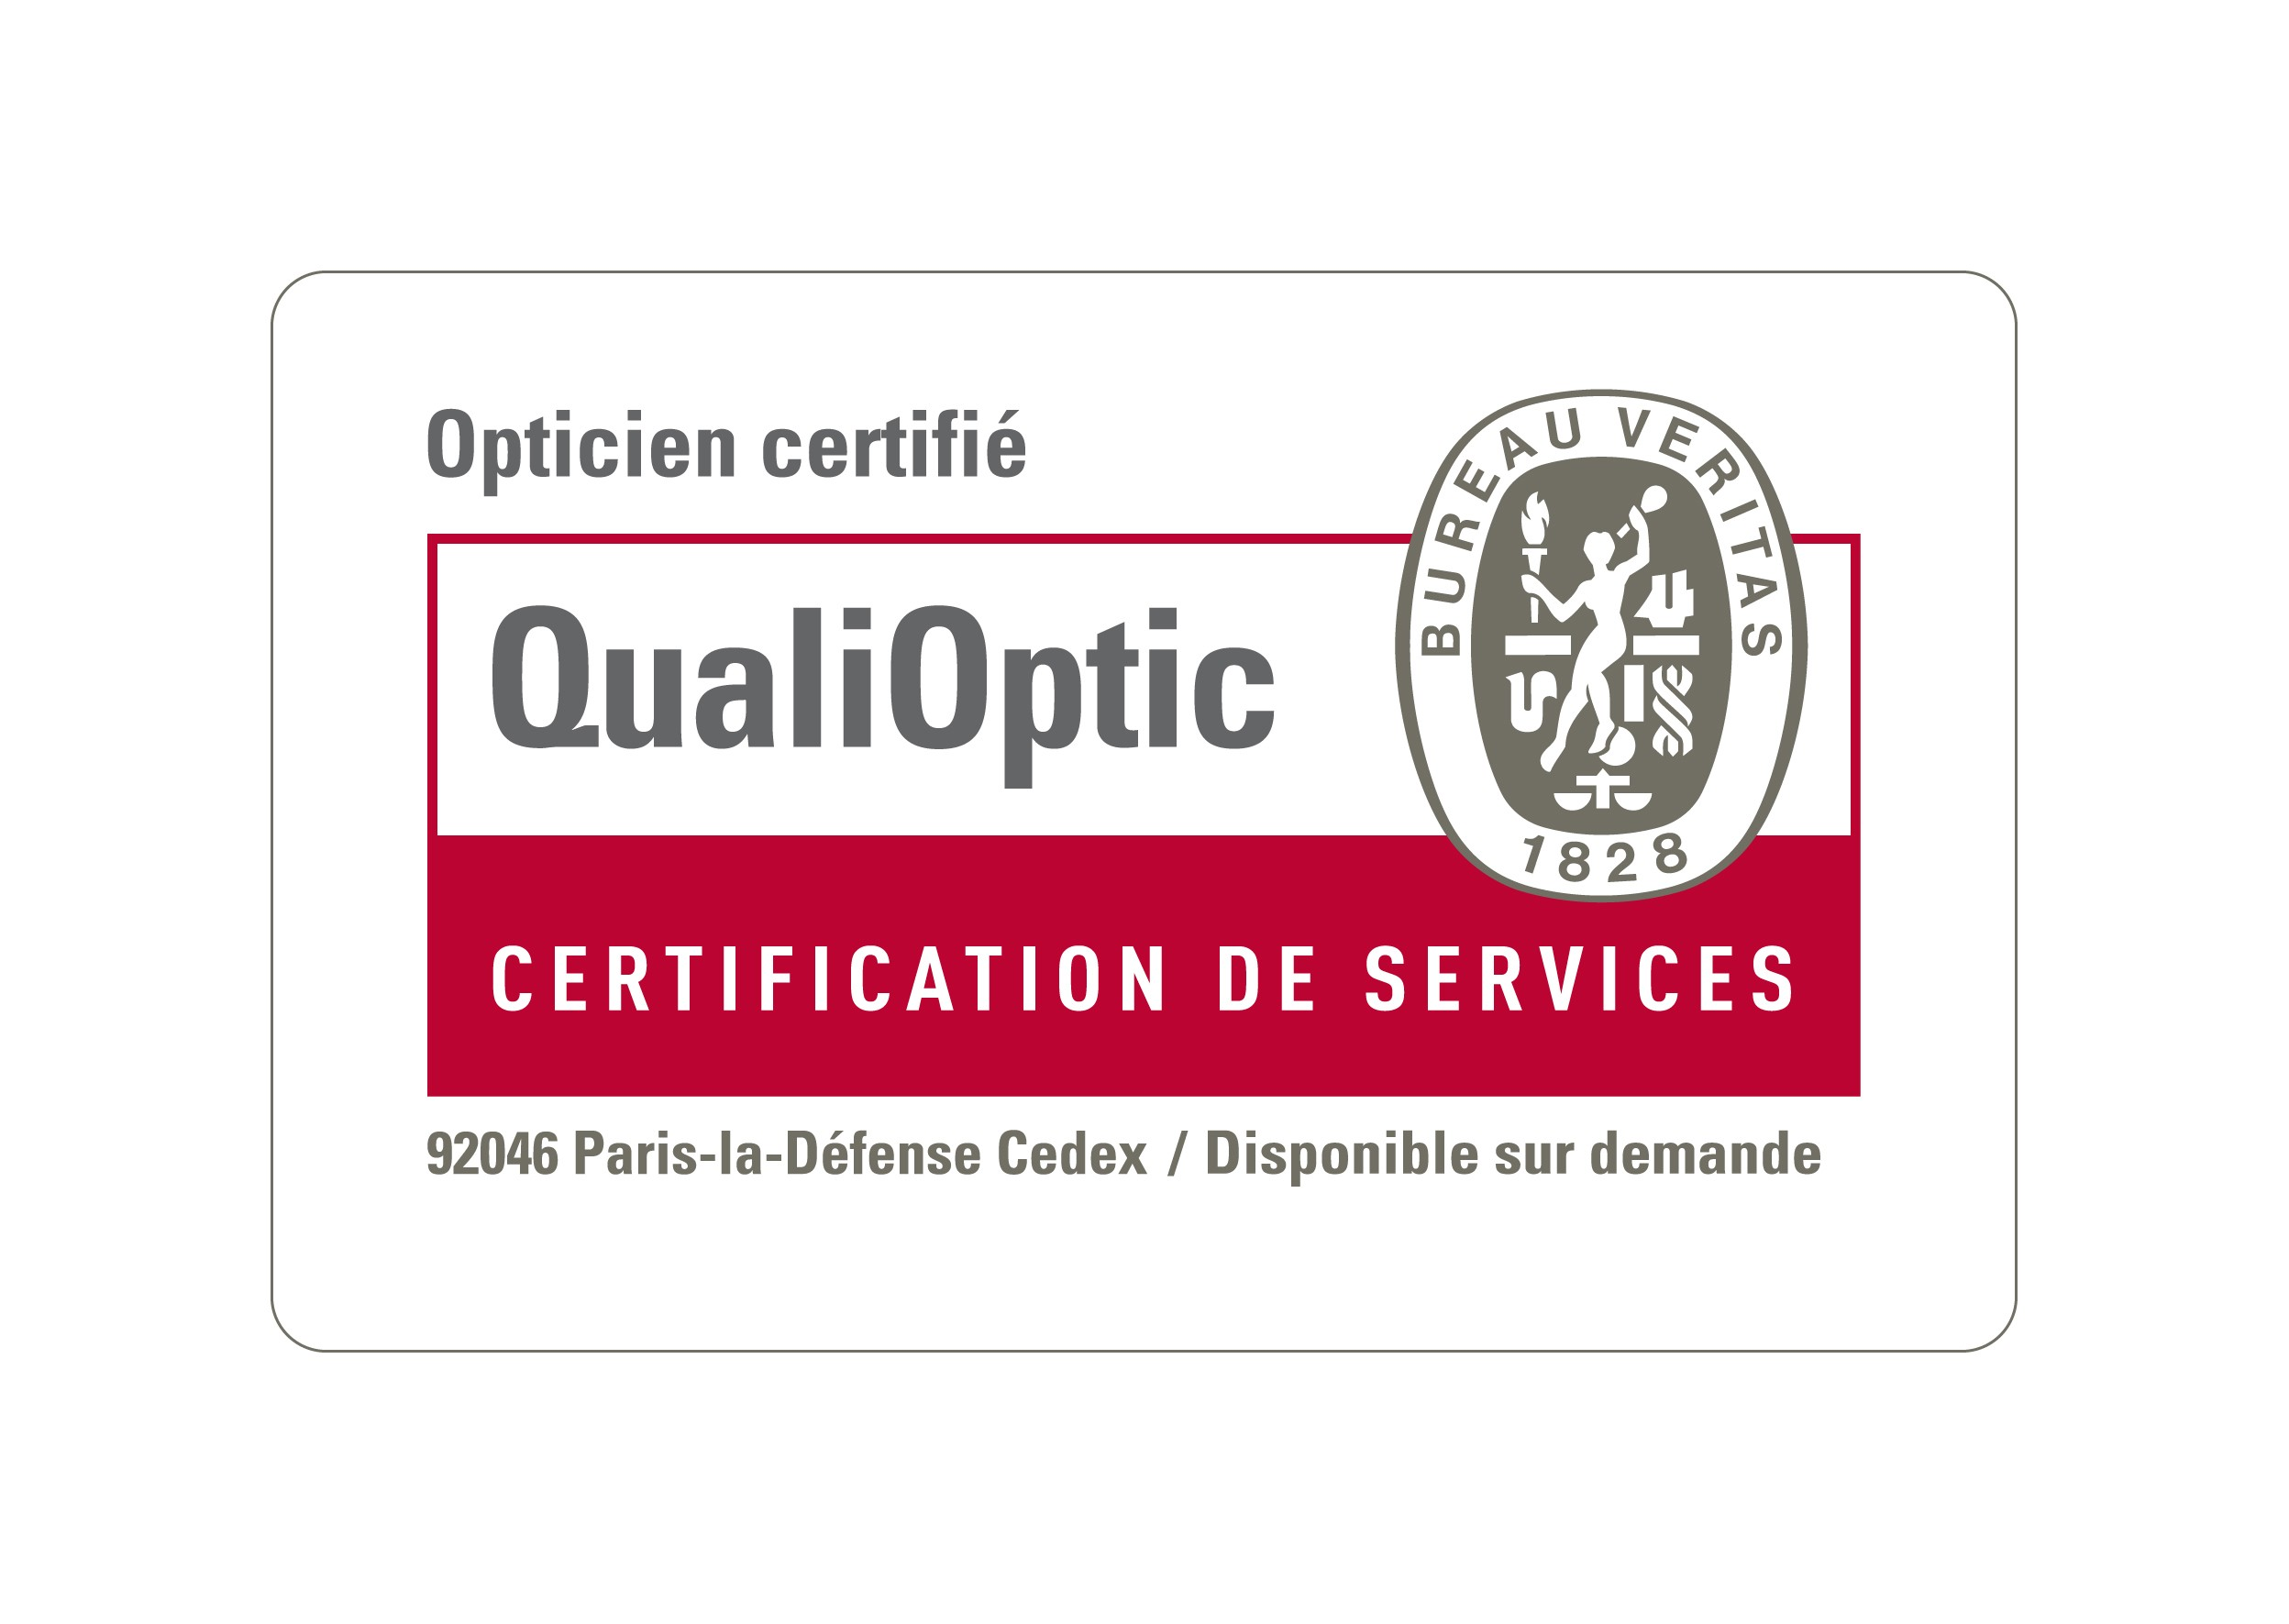 Les Opticiens Mutualistes Visuel  Certification QualiOptique